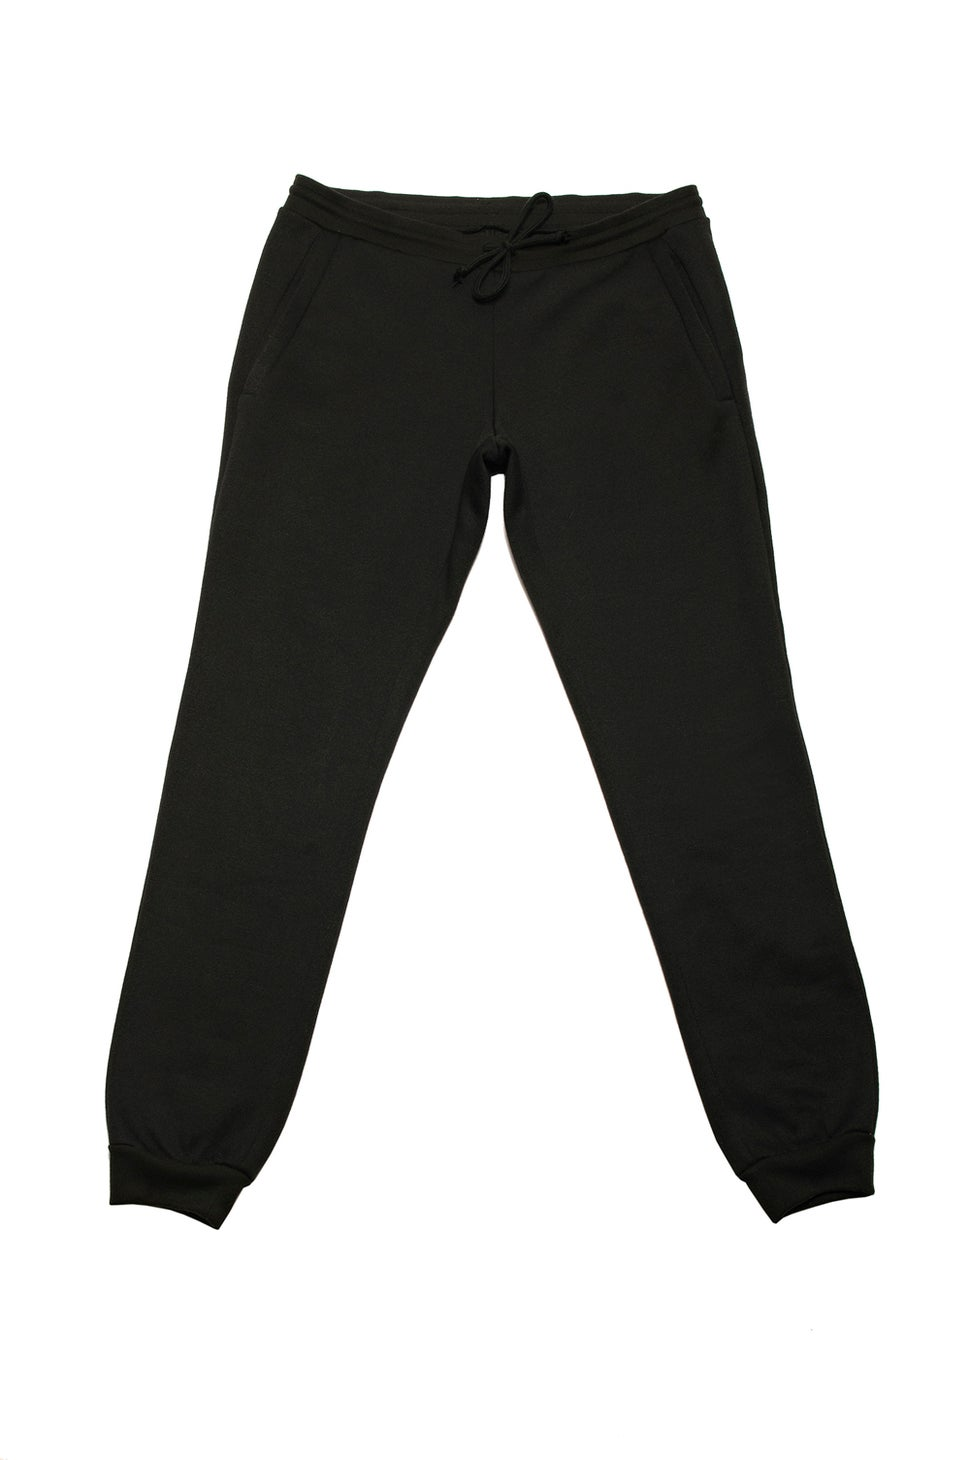 Image of Militant Pants